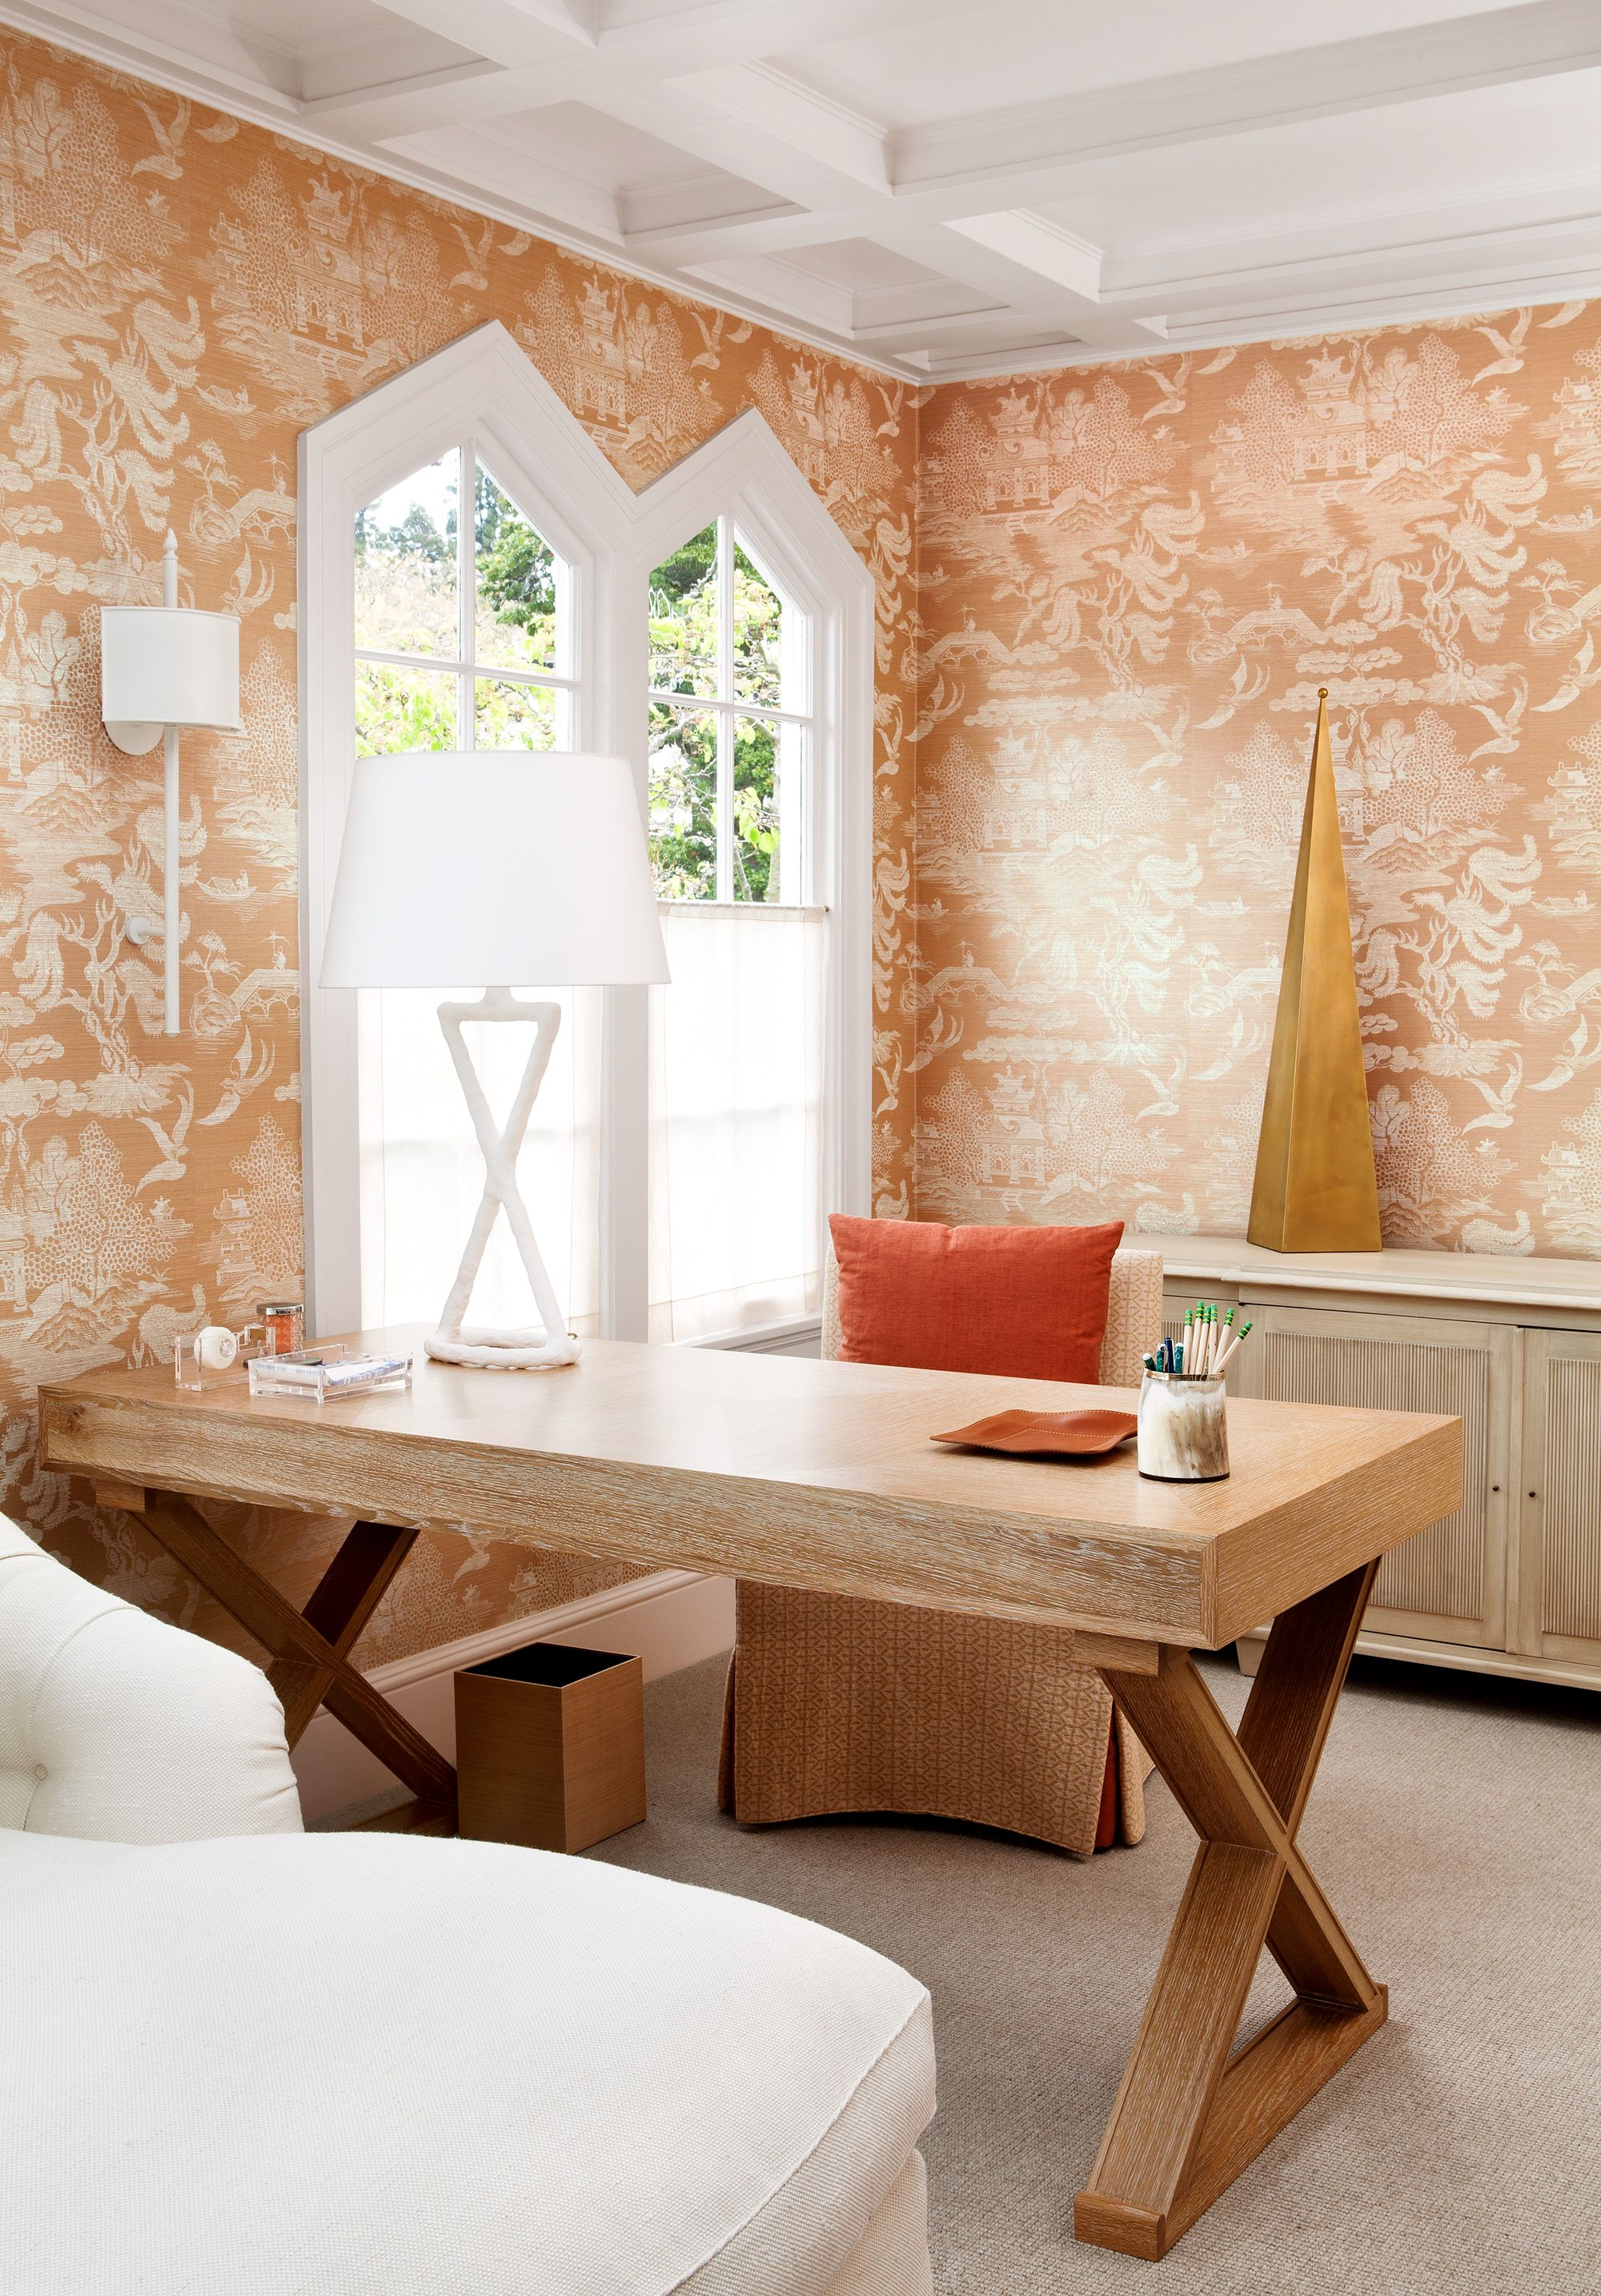 20 Beautiful Rooms With Grasscloth Wallpaper Best Grasscloth Wallpaper Ideas